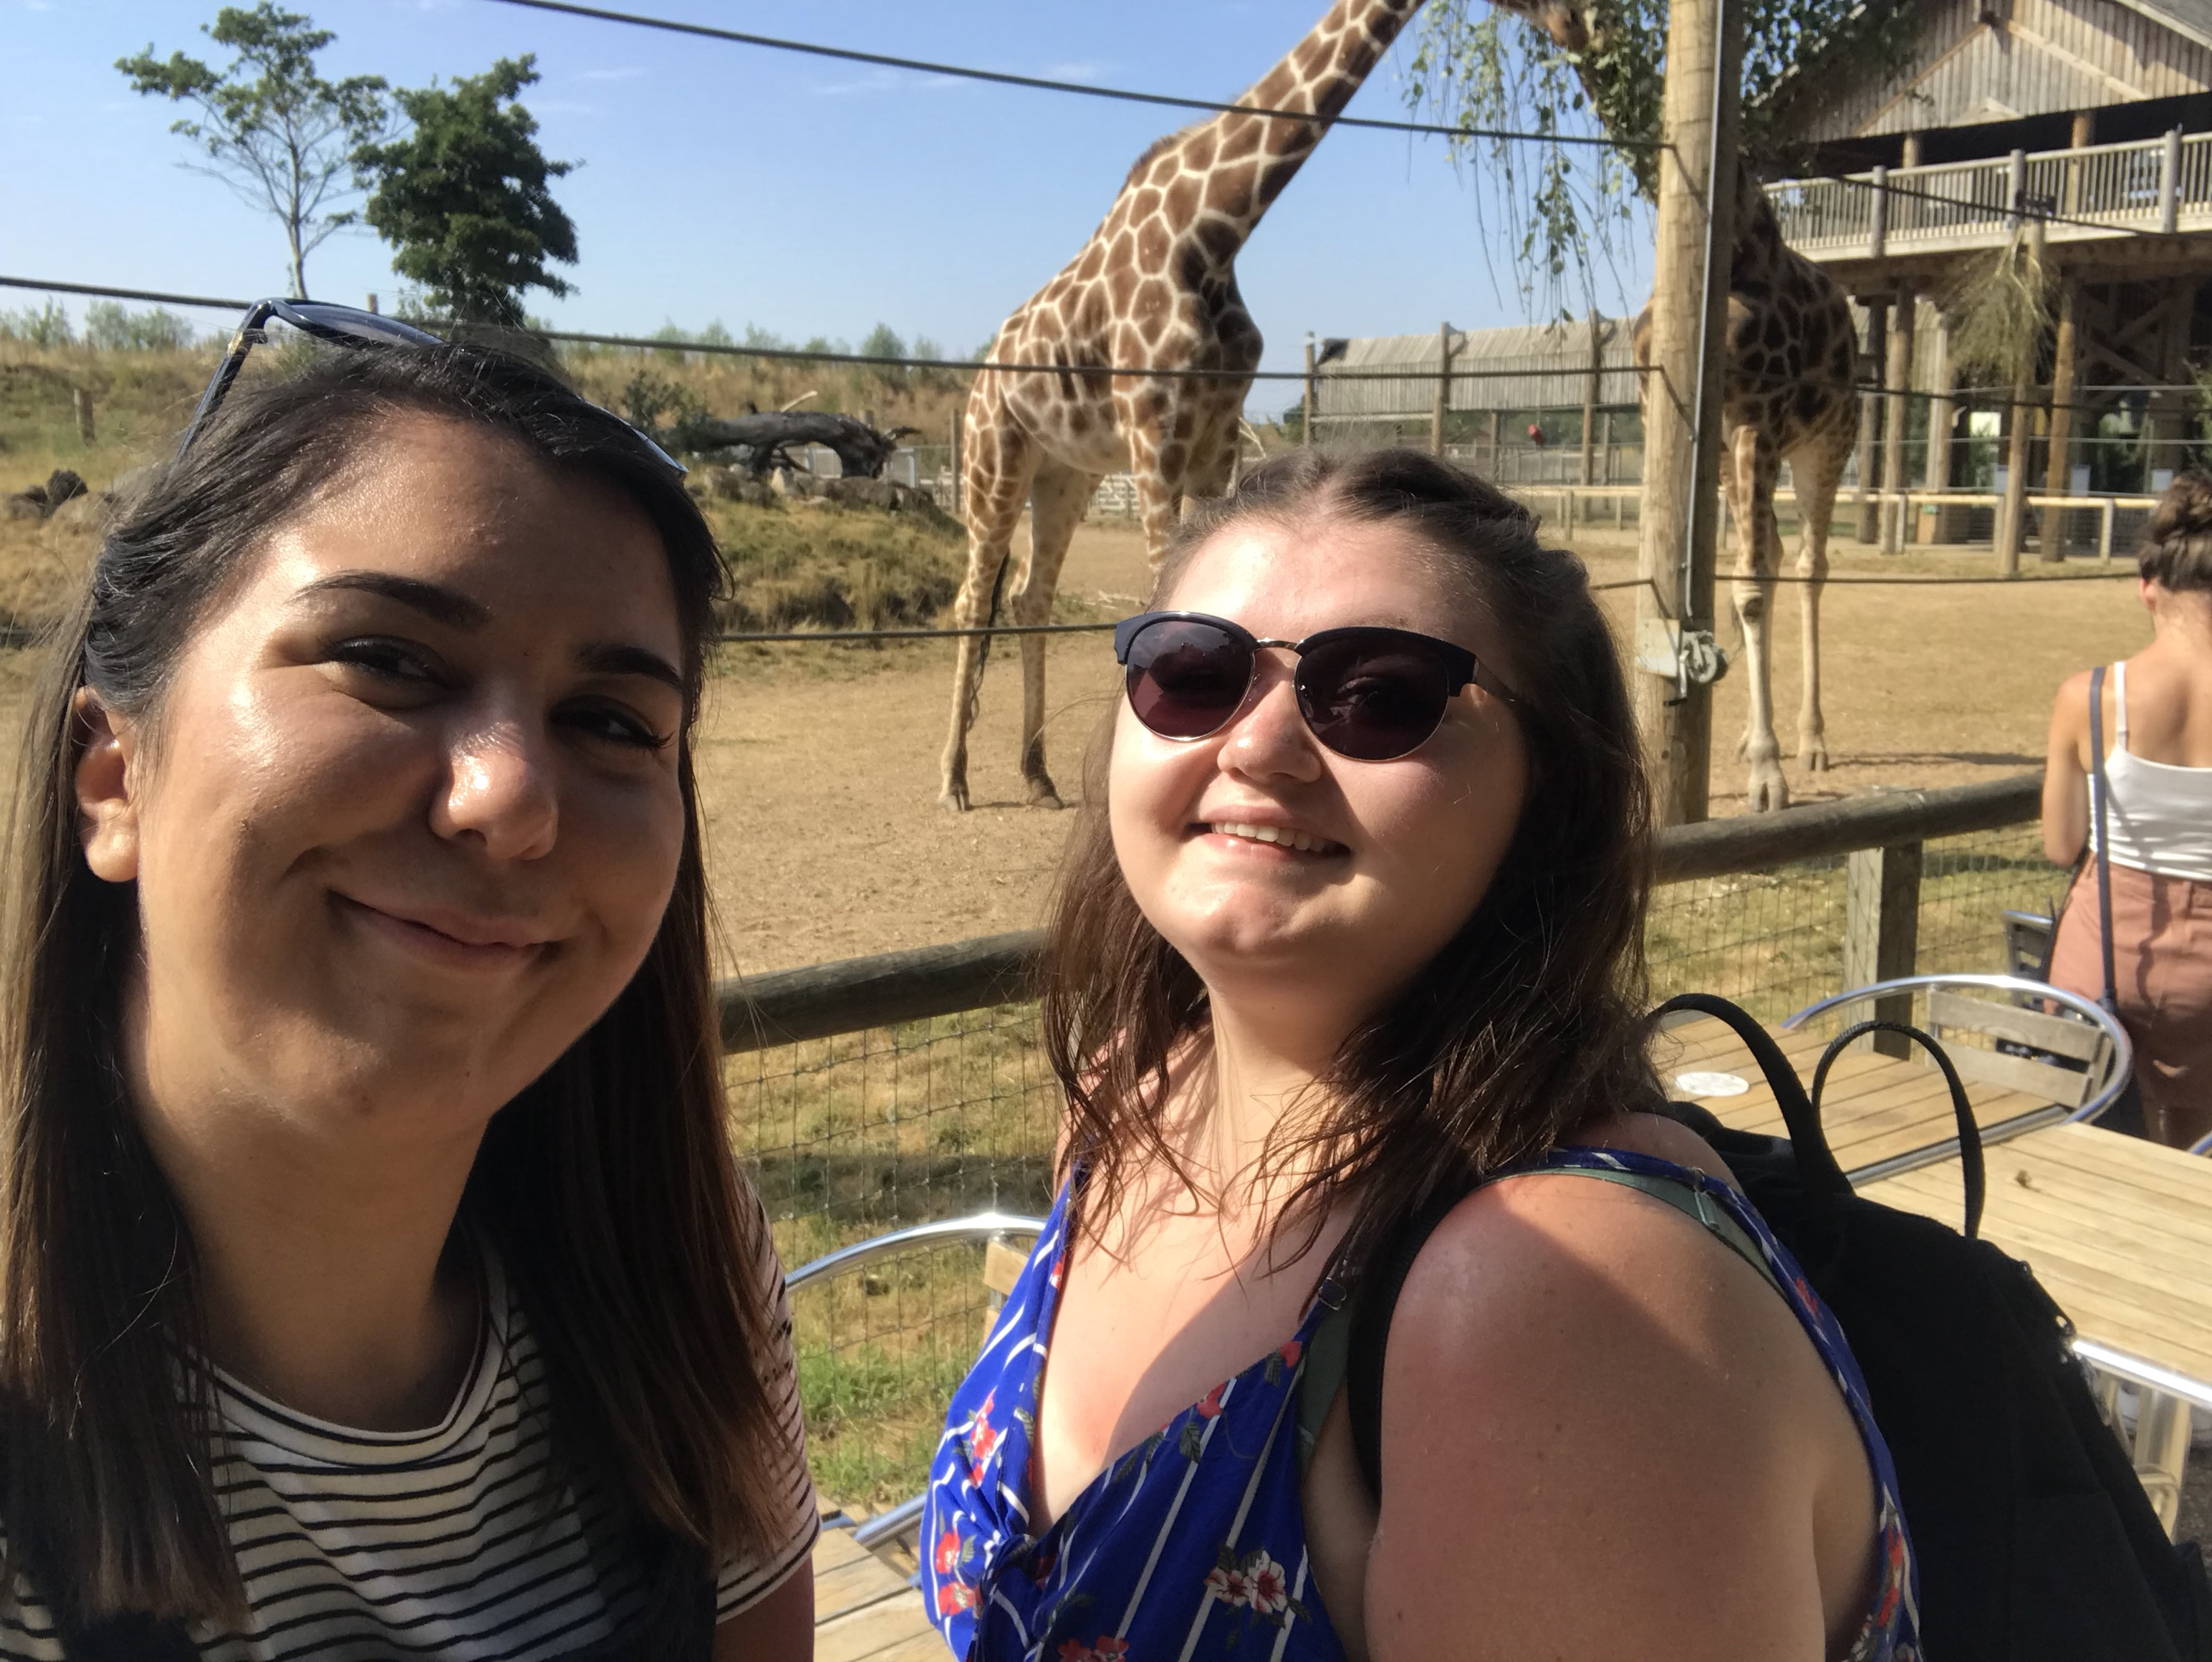 Selfie with the giraffes